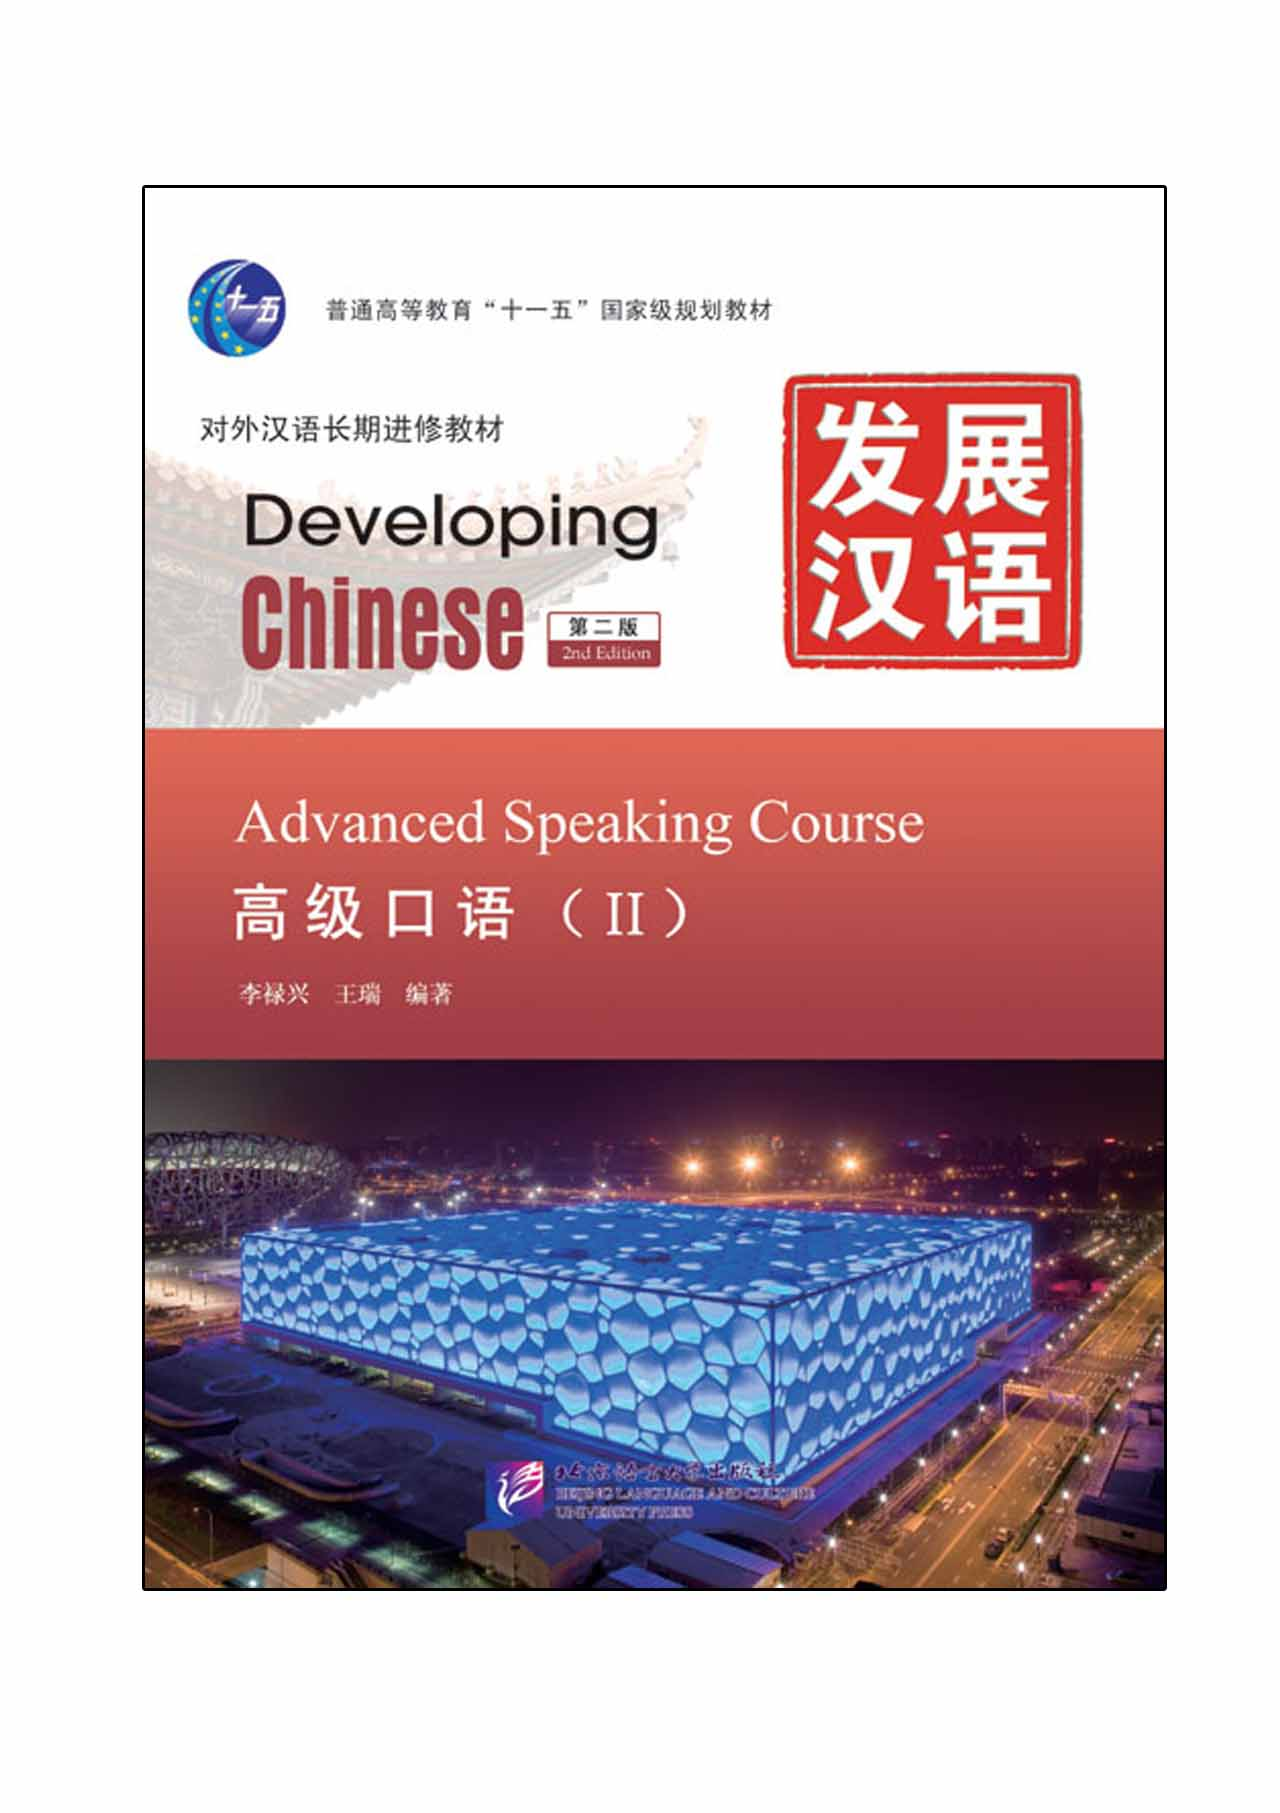 发展汉语(第2版)高级口语(Ⅱ)(含1MP3)Developing Chinese (2nd Edition) Advanced Speaking Course II+MP3